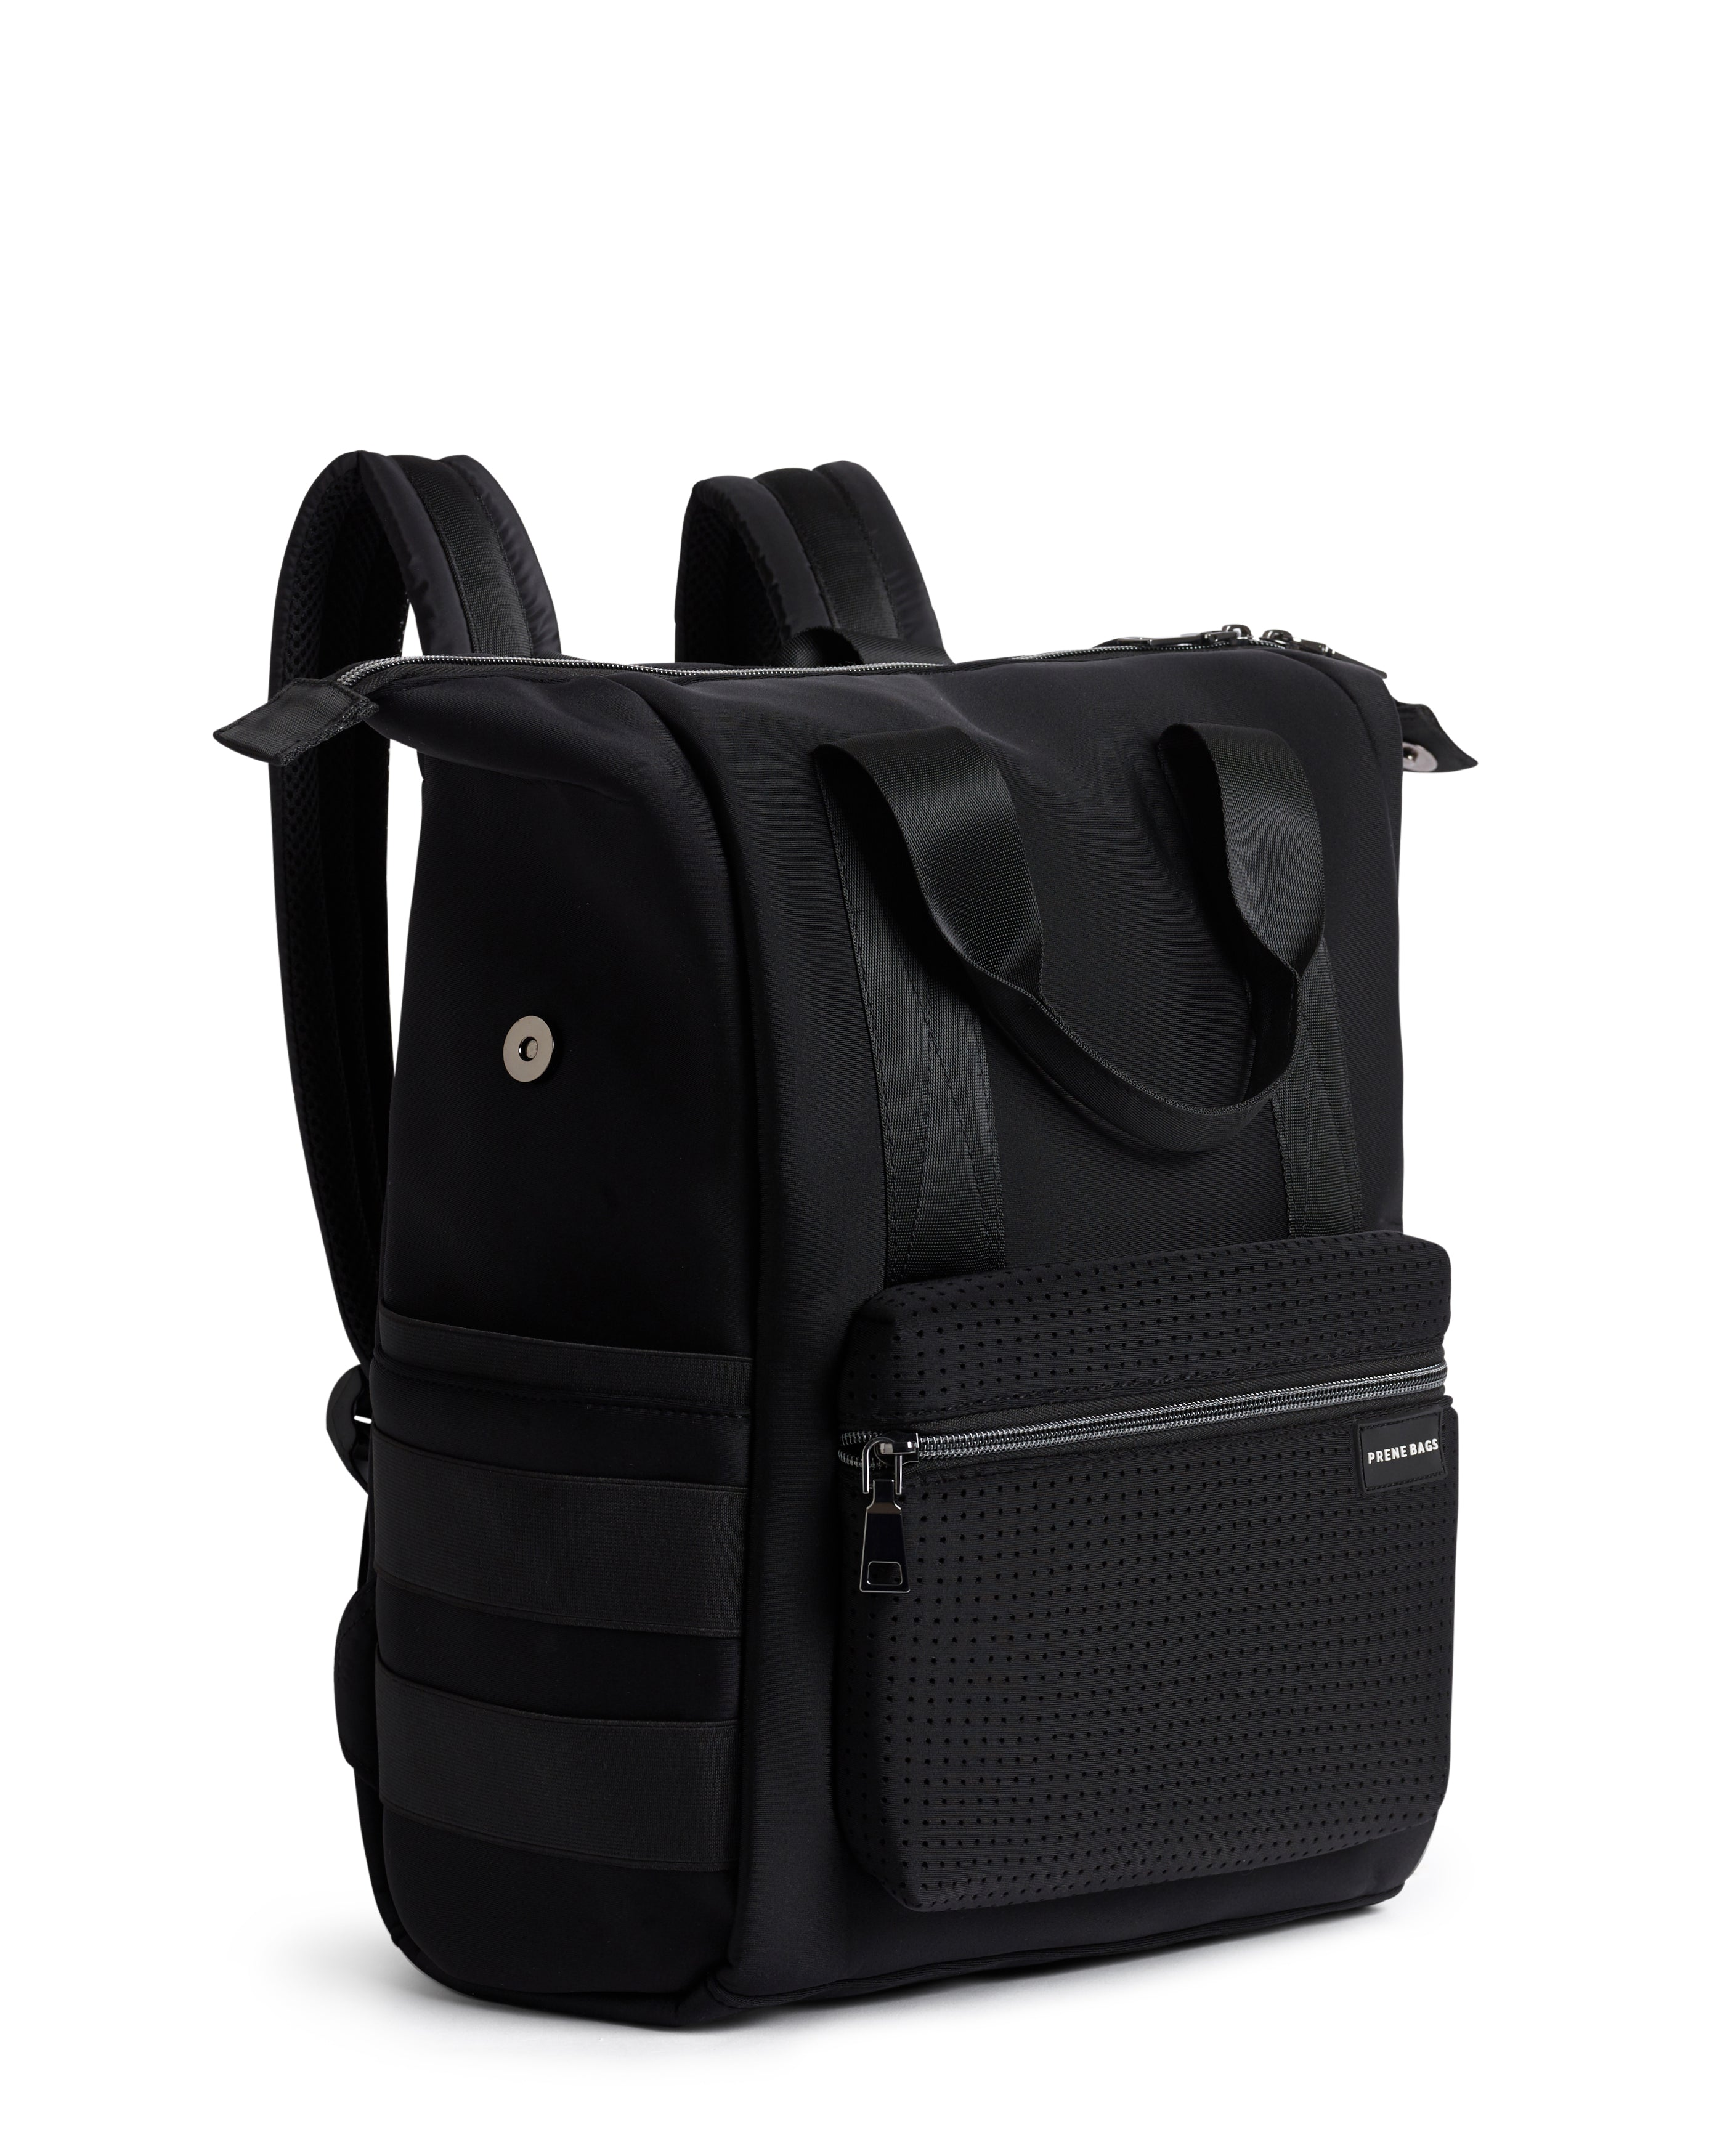 THE HAVEN BACKPACK